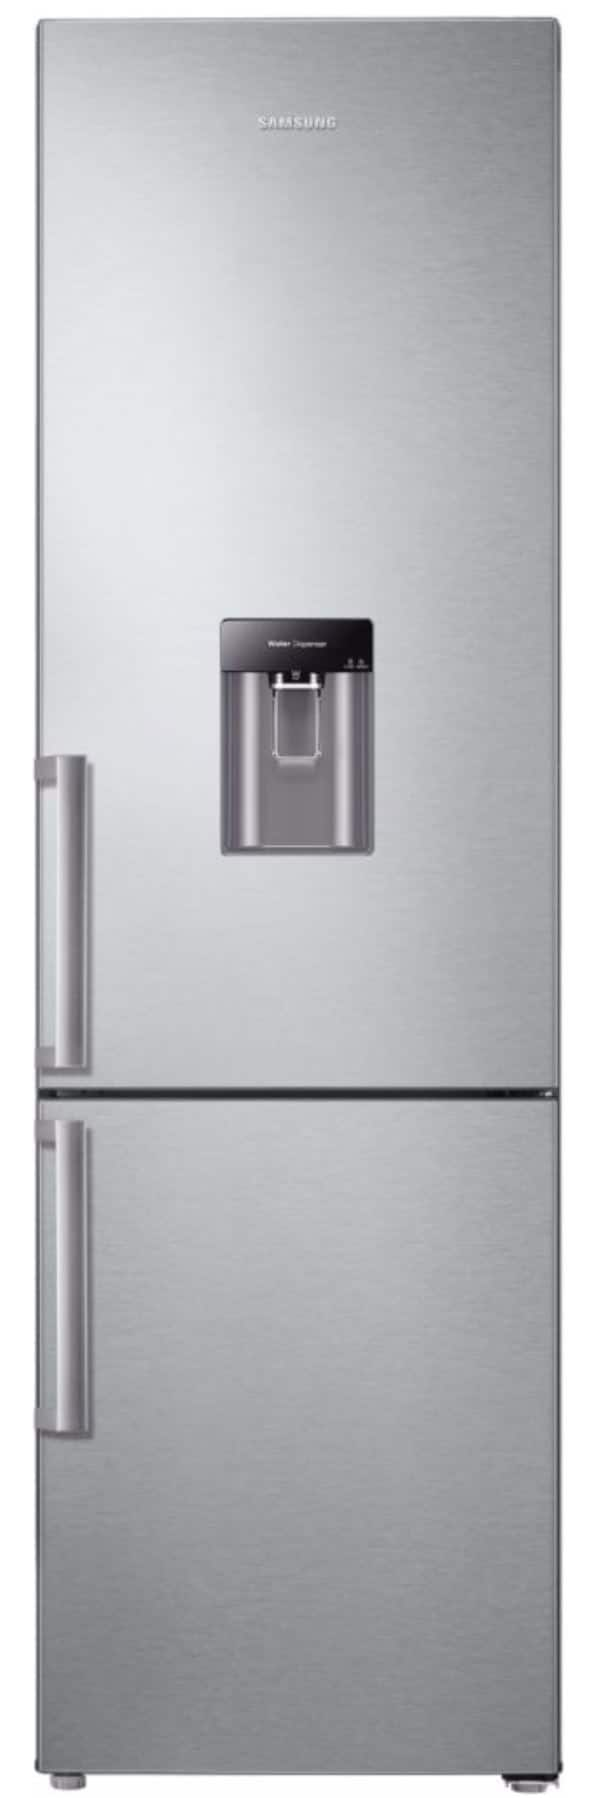 darty frigo beko samsung rsgpumh rfrigrateur amricain l with darty frigo beko frigo cube. Black Bedroom Furniture Sets. Home Design Ideas